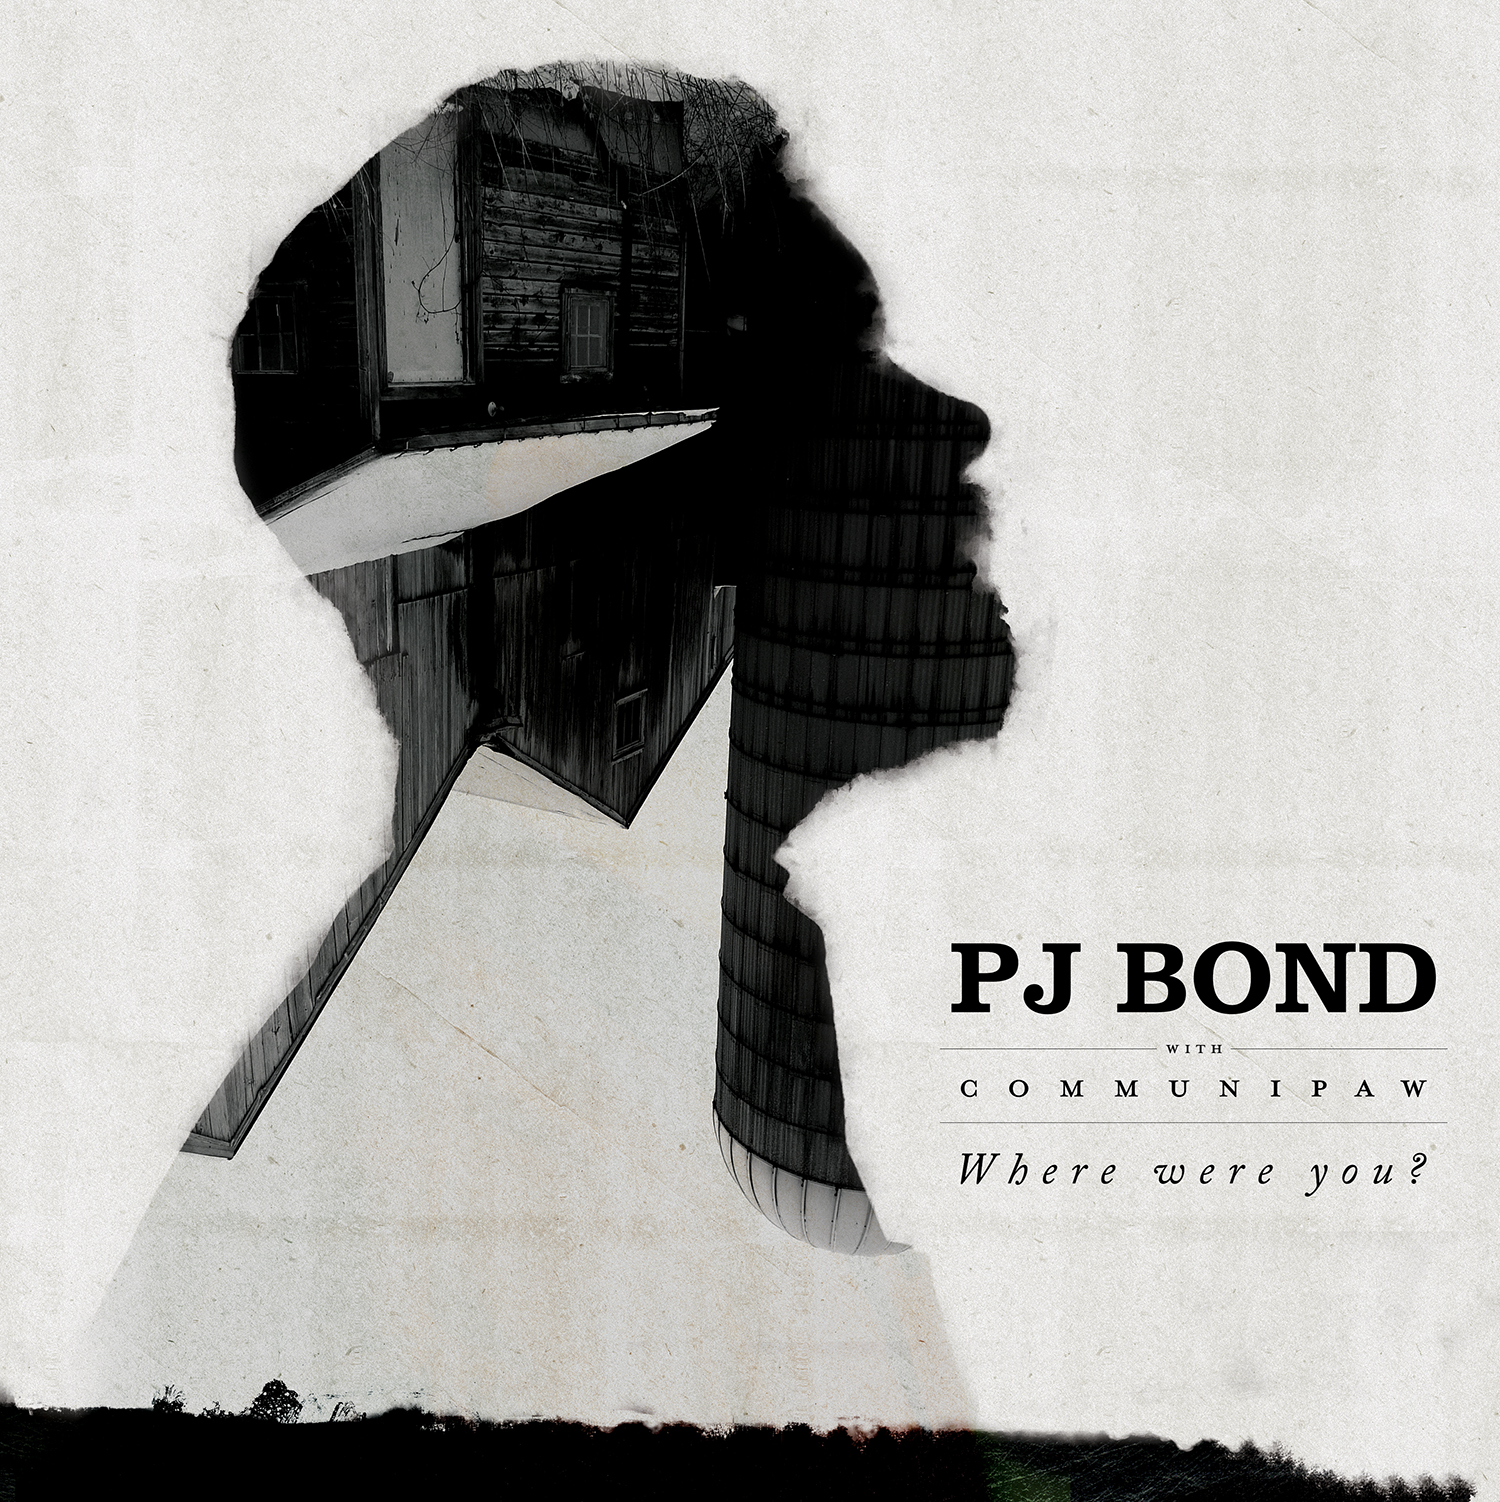 PJ Bond - Album packshot